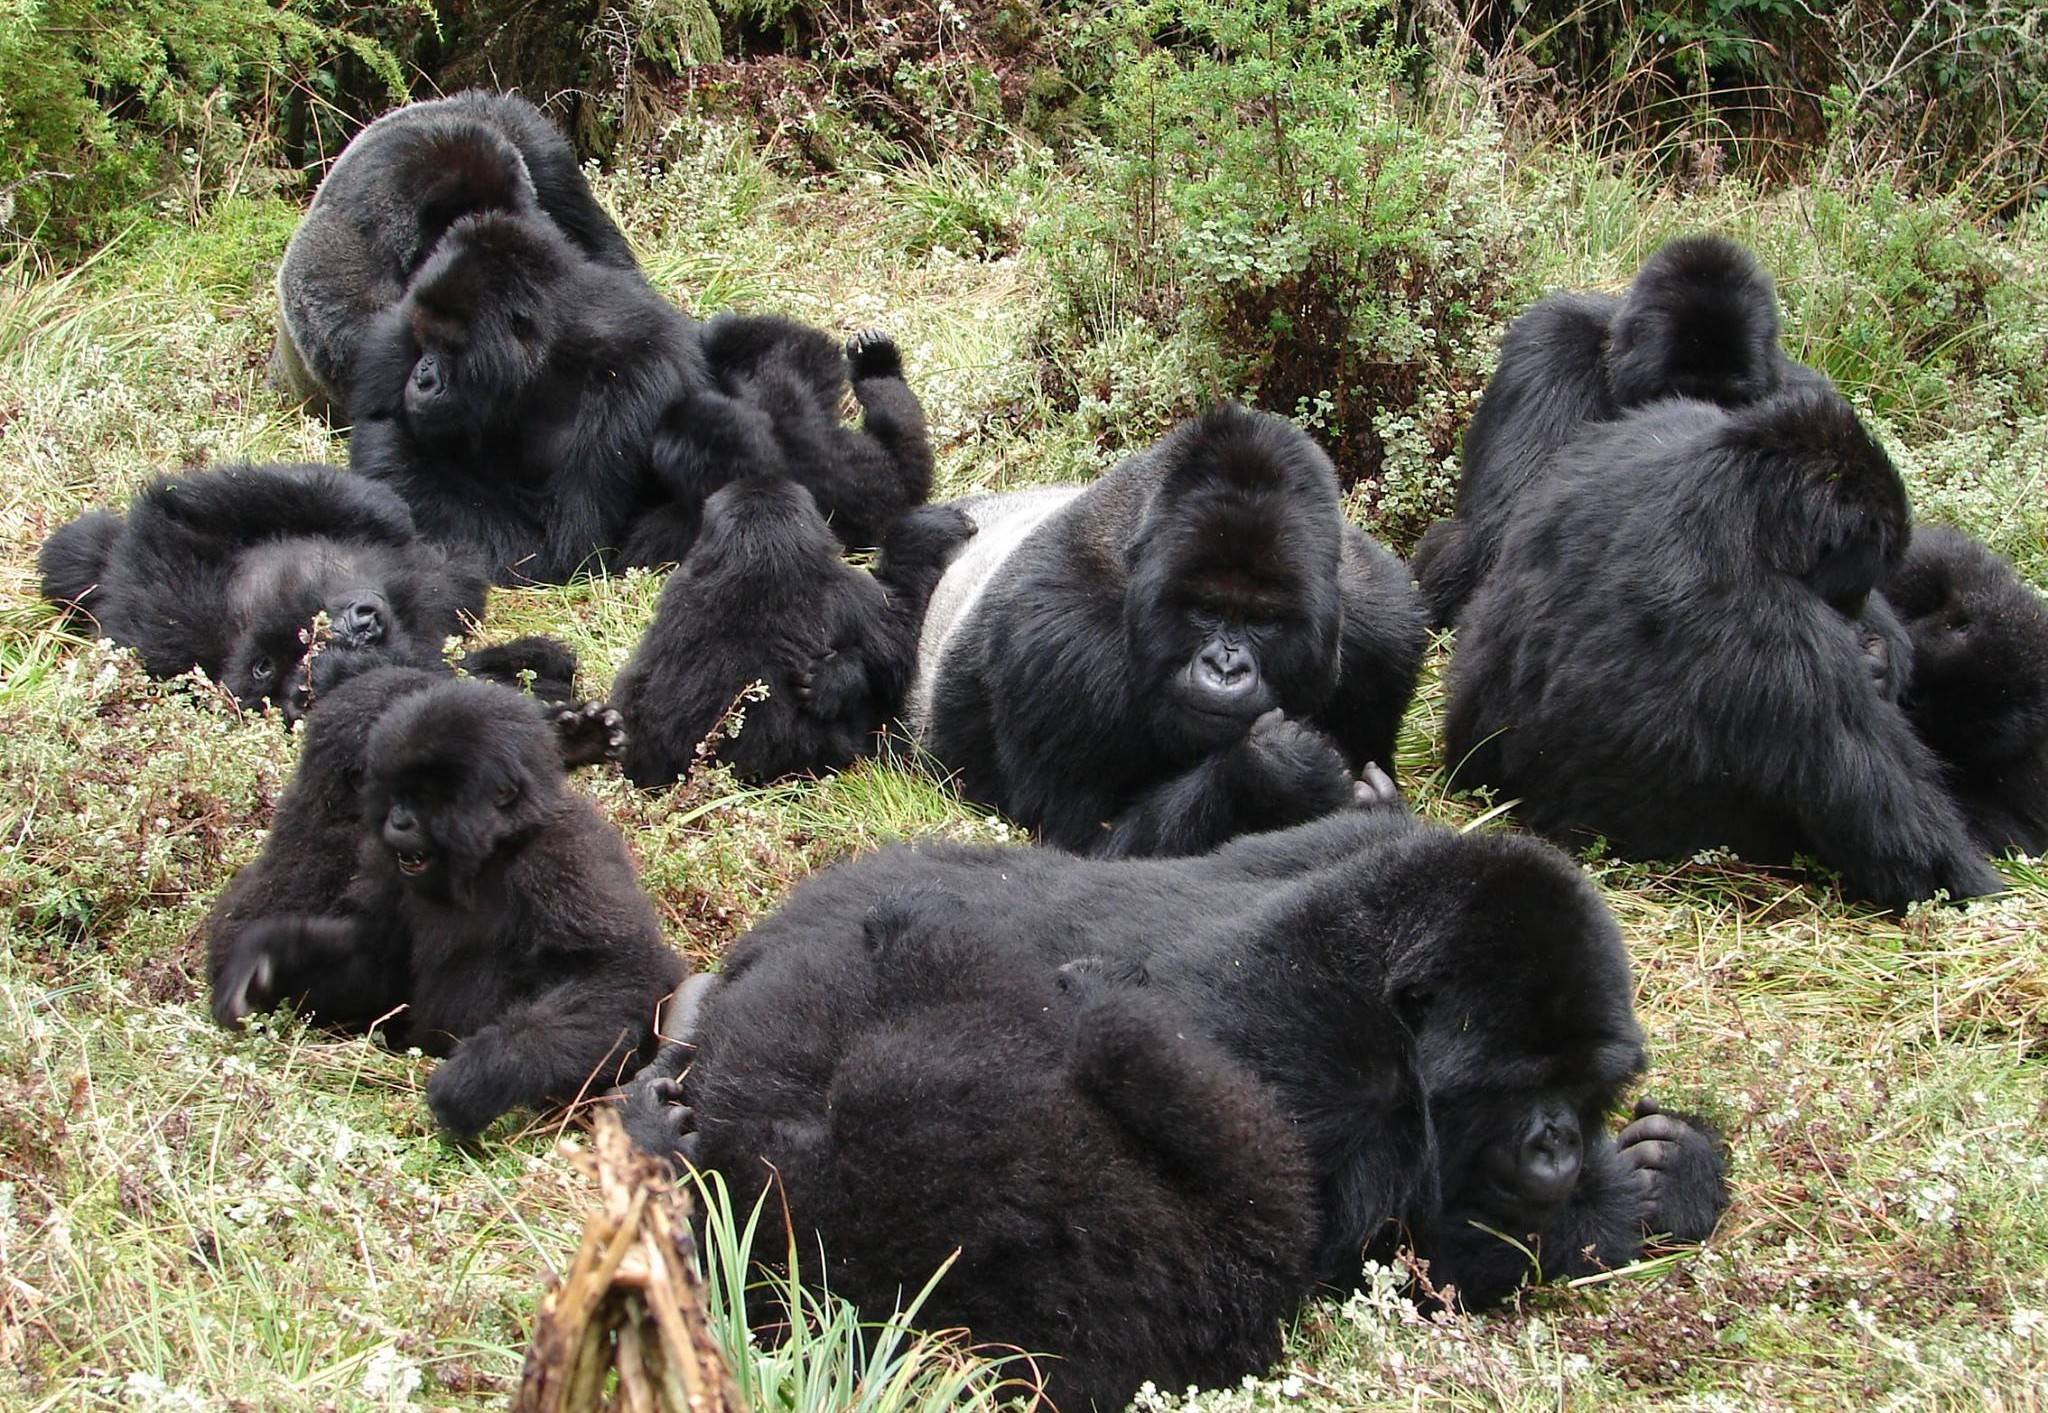 Gorilla groups/ families available in Uganda.